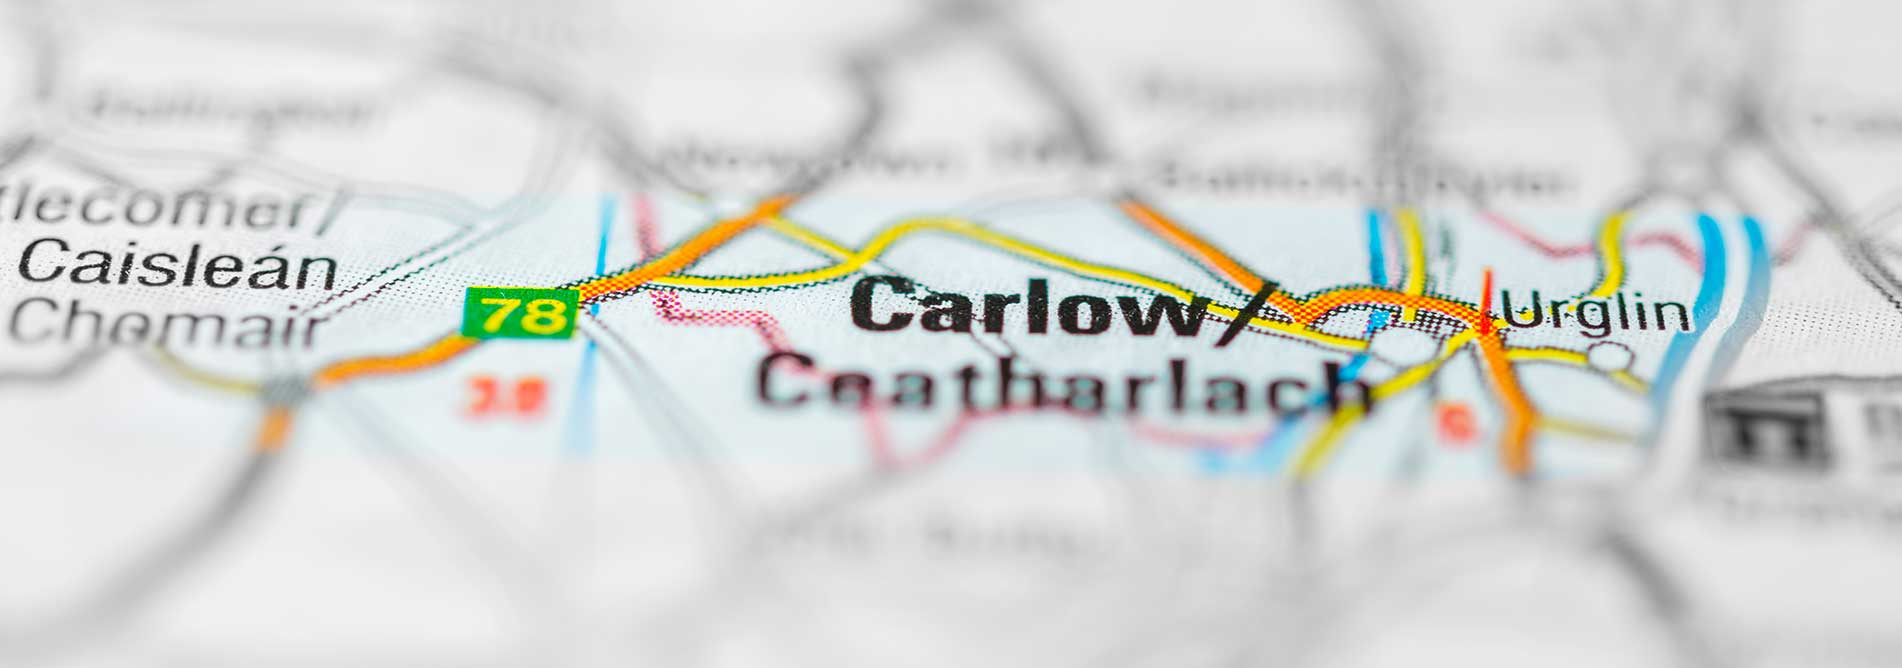 carlow map